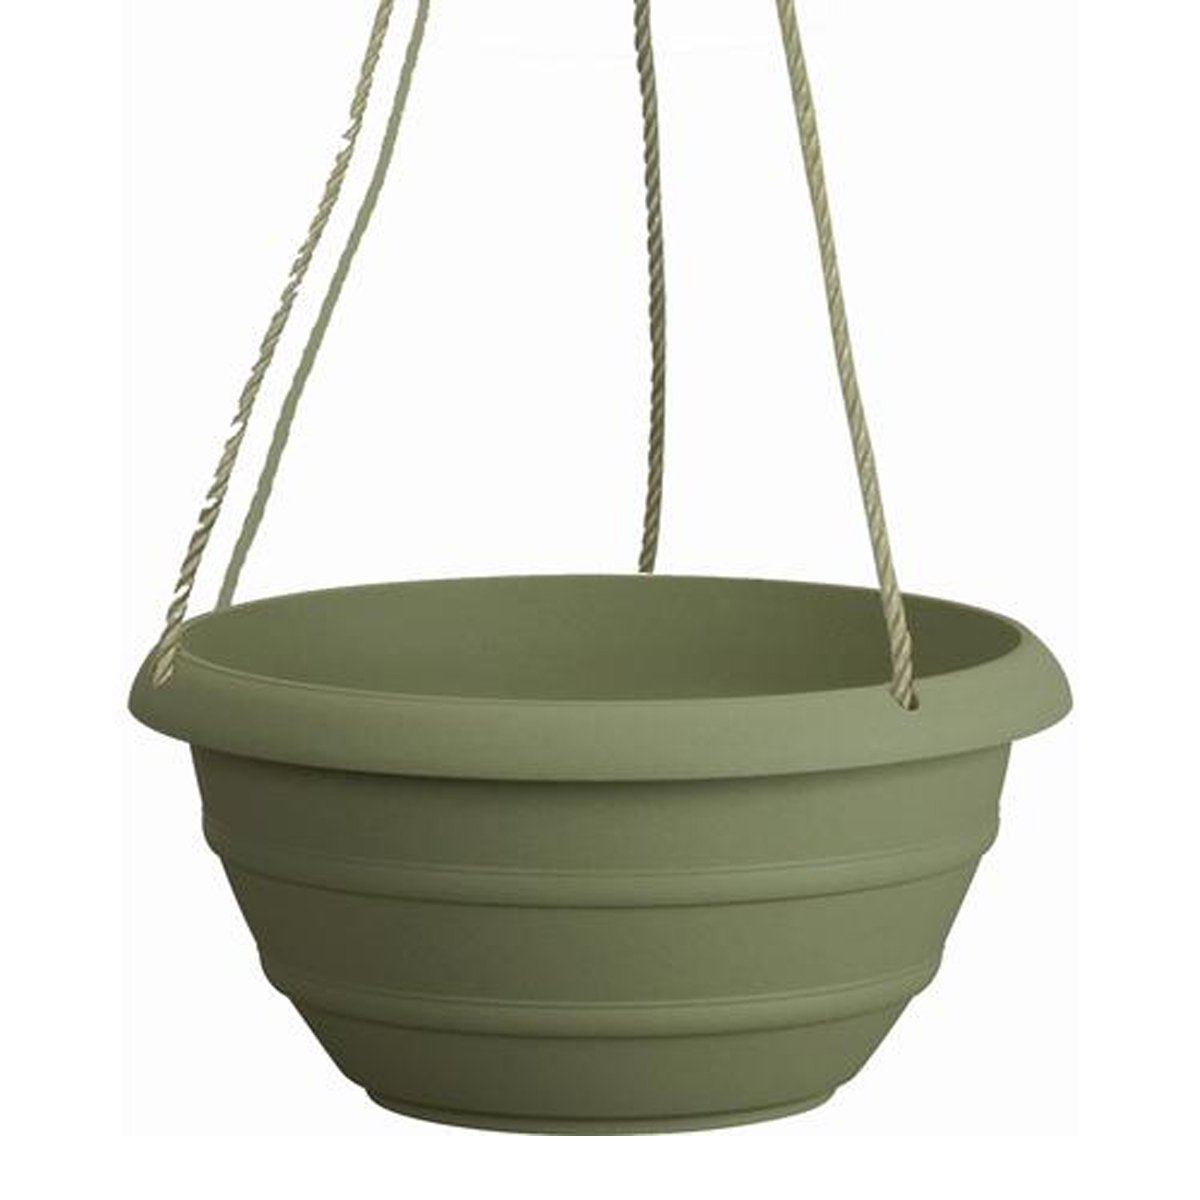 Marina Hanging Basket Resin Planter - Weather Proof Lightweight - 12'' H x 12'' W x 7'' D (Slate Green)